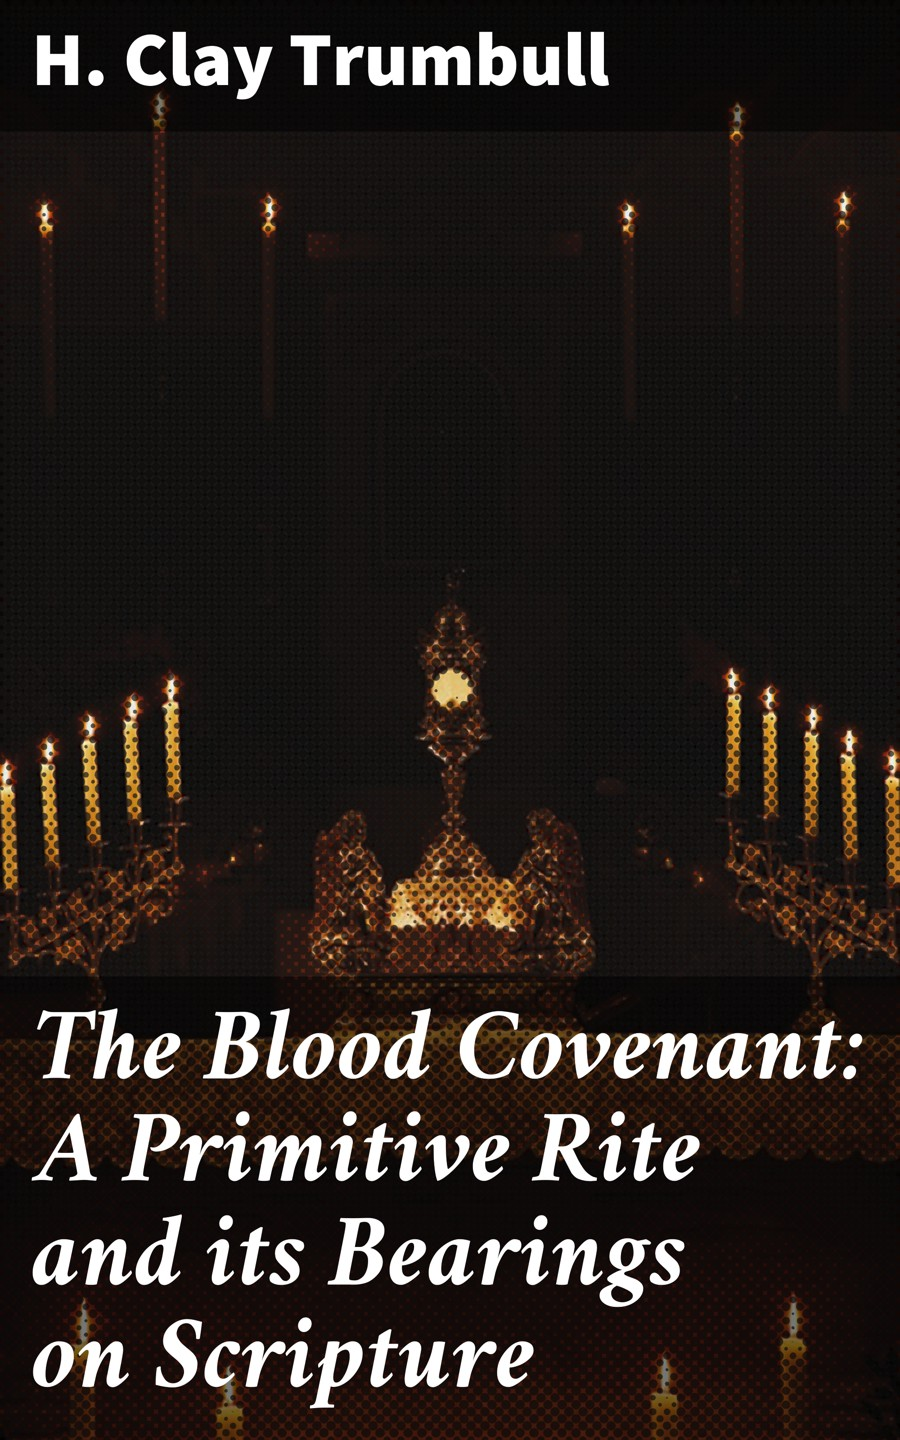 H. Clay Trumbull The Blood Covenant: A Primitive Rite and its Bearings on Scripture